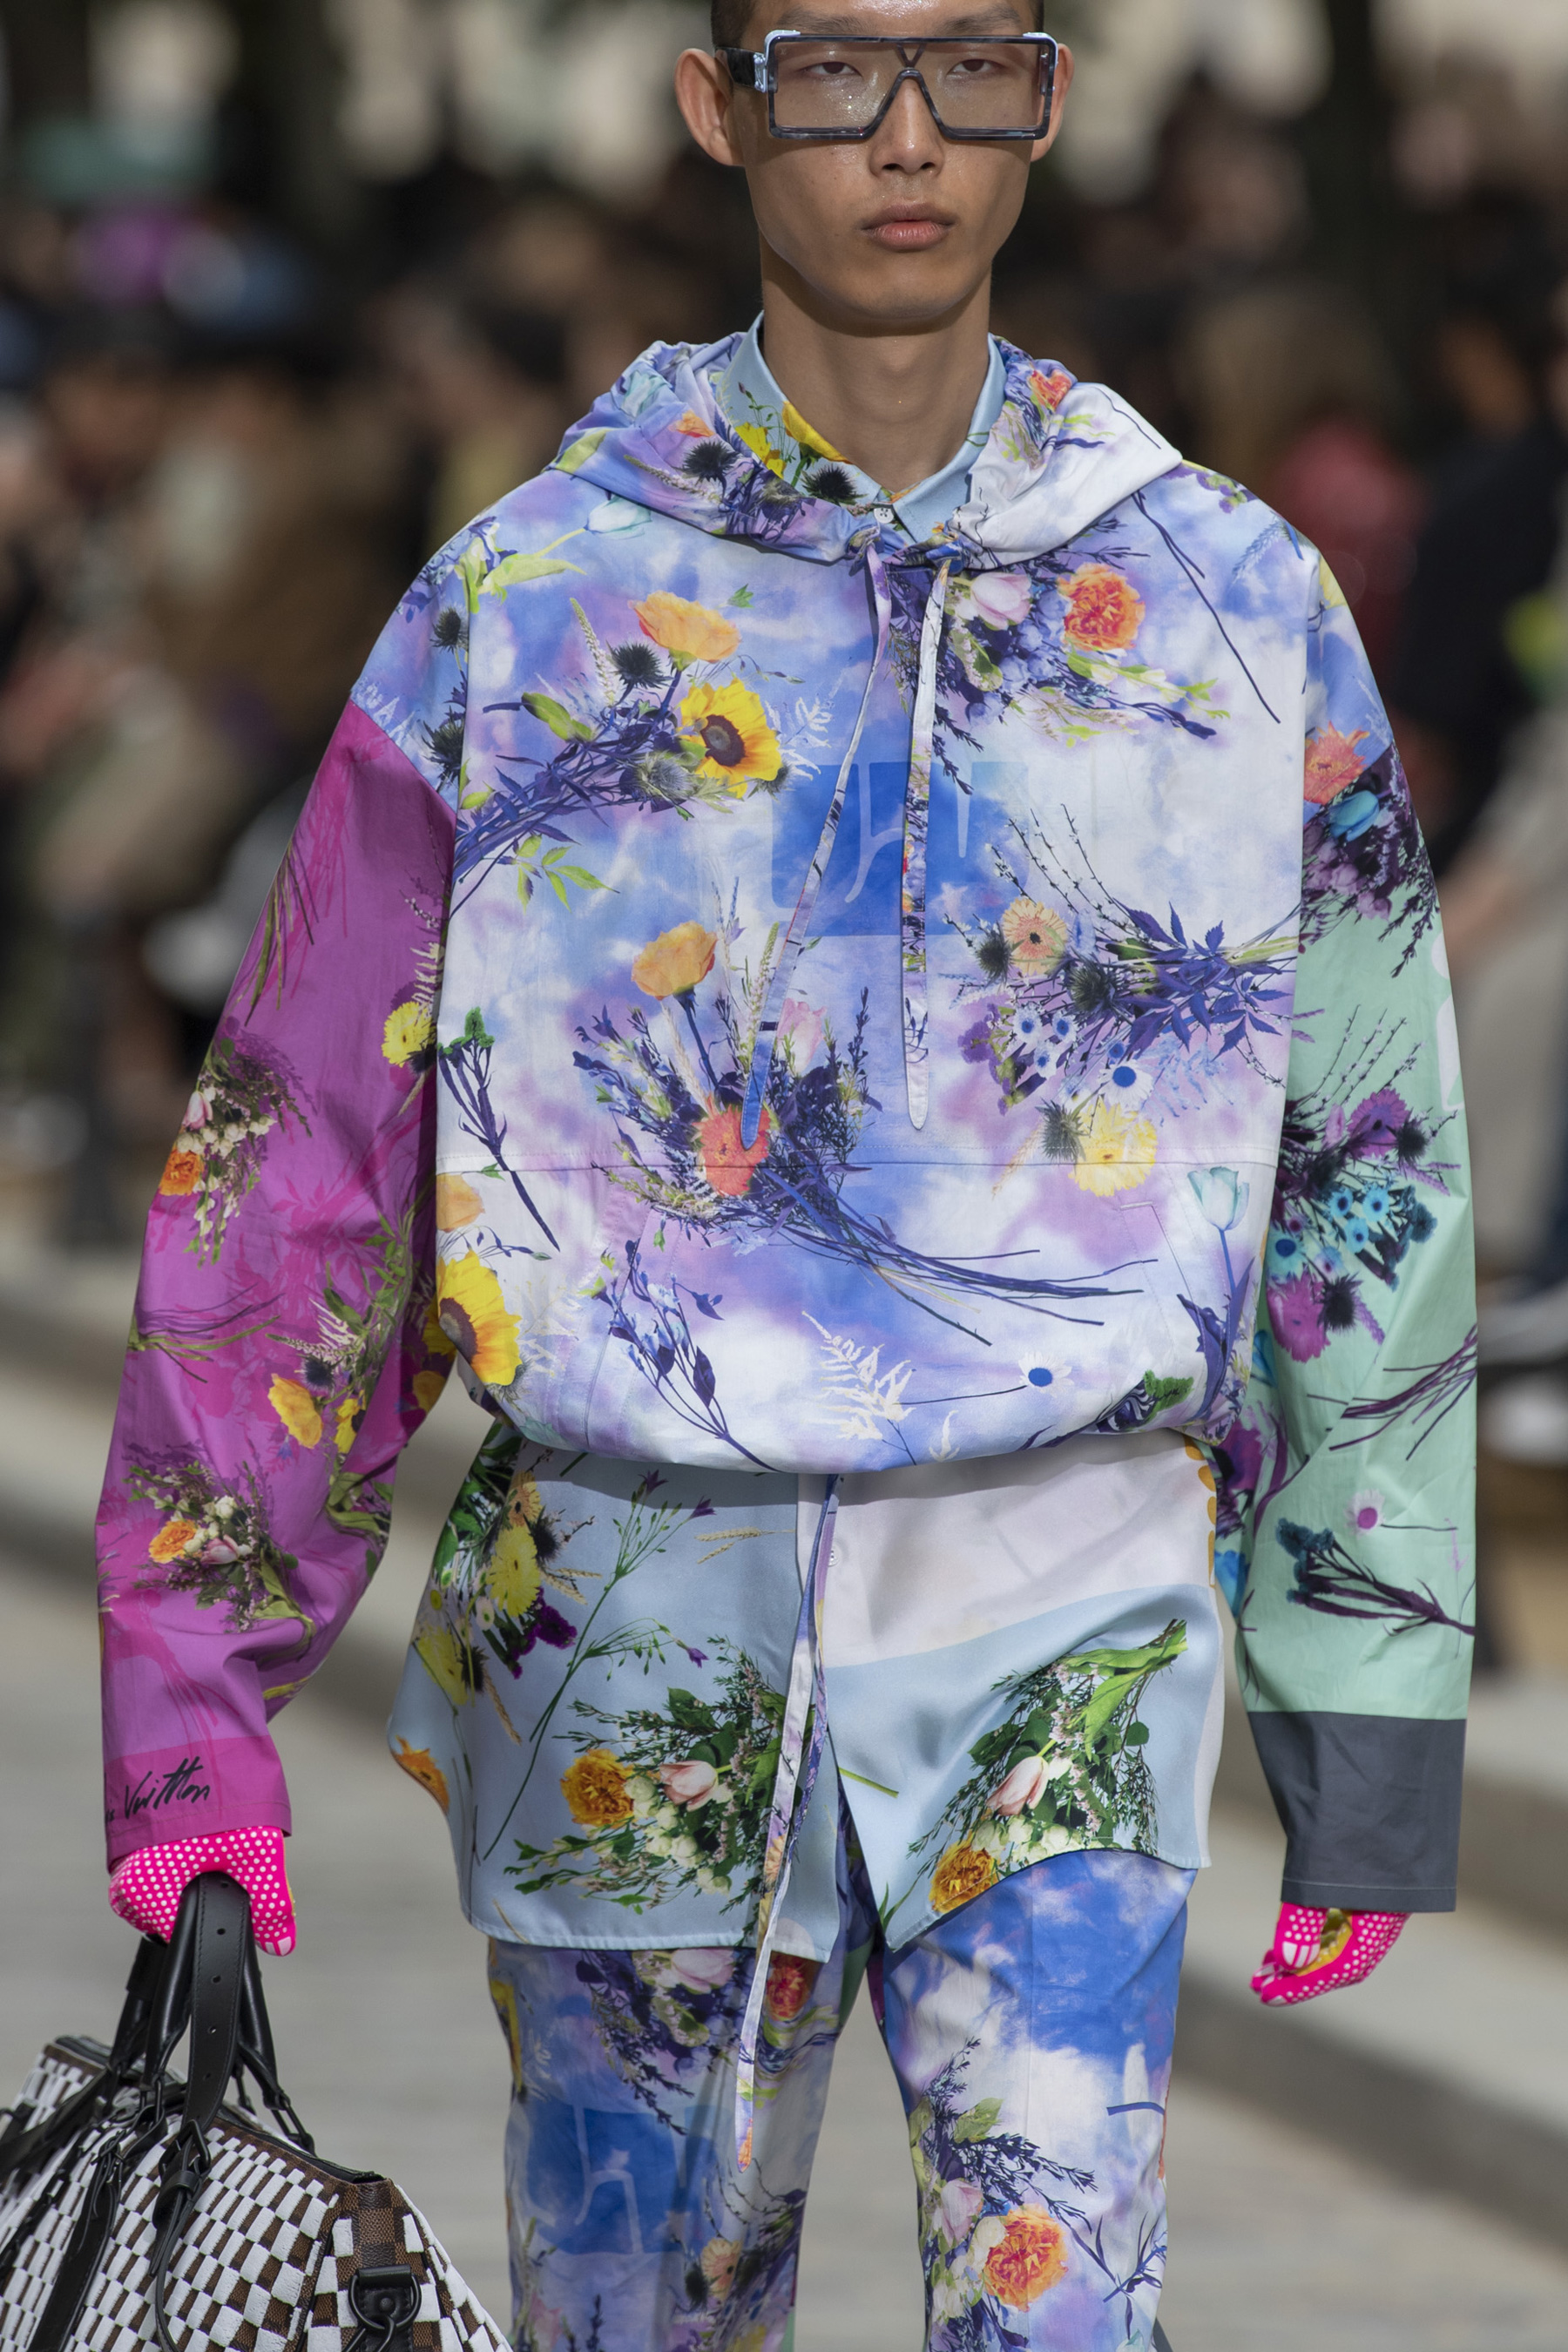 Louis Vuitton Spring 2020 Men's Fashion Show Details